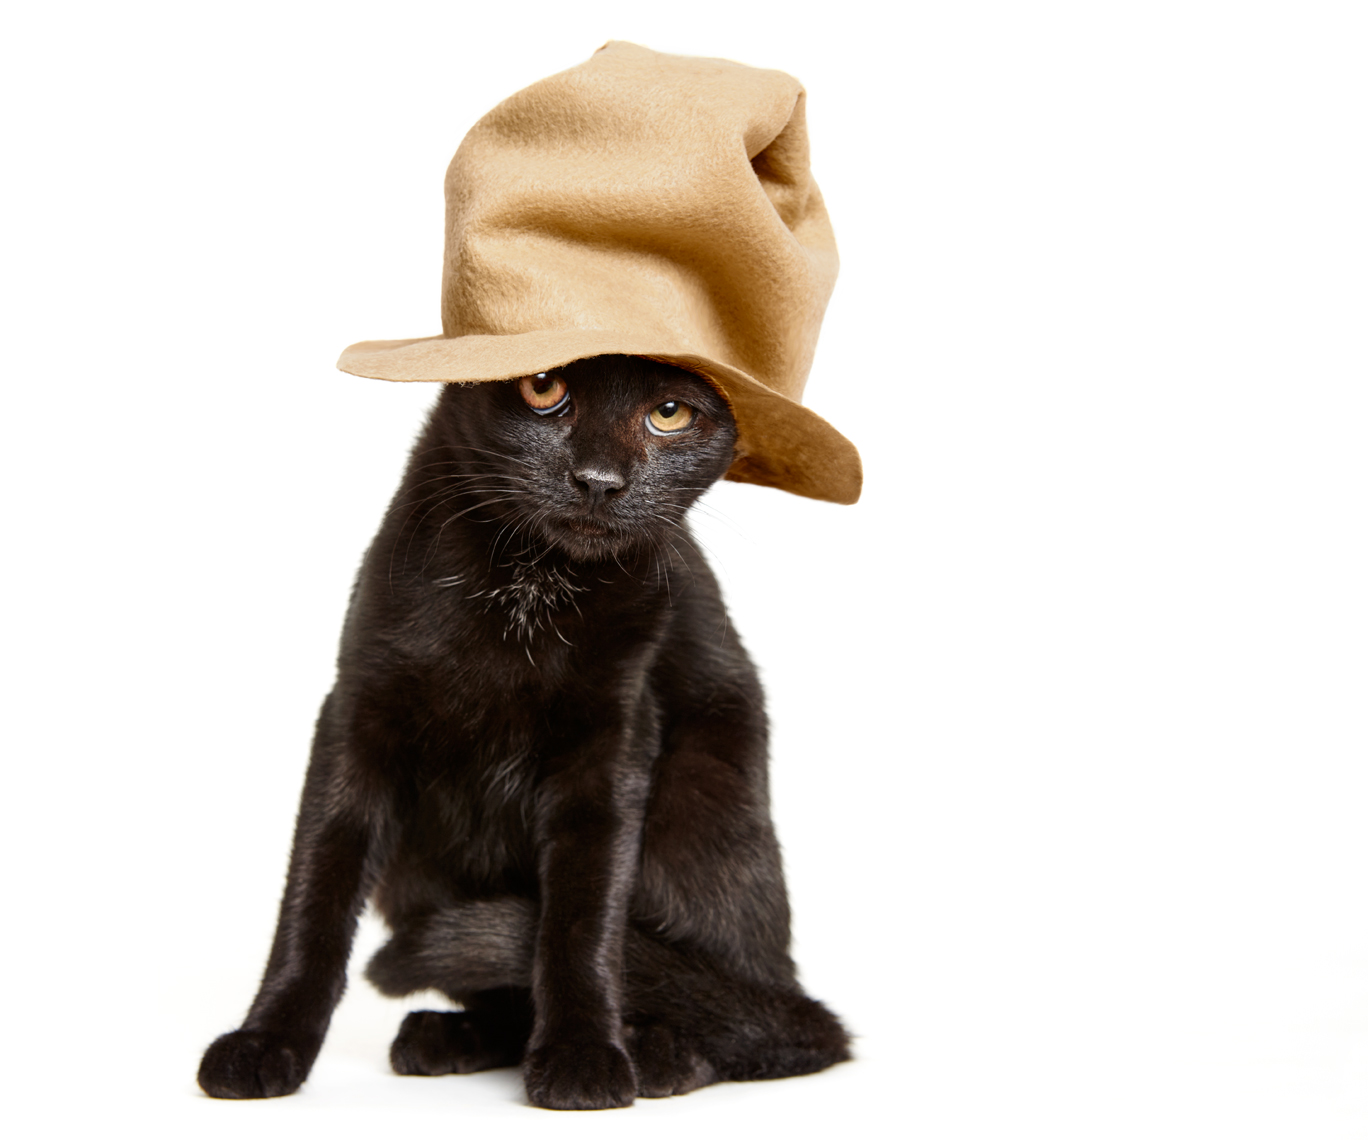 Kitten in Pharrell hat